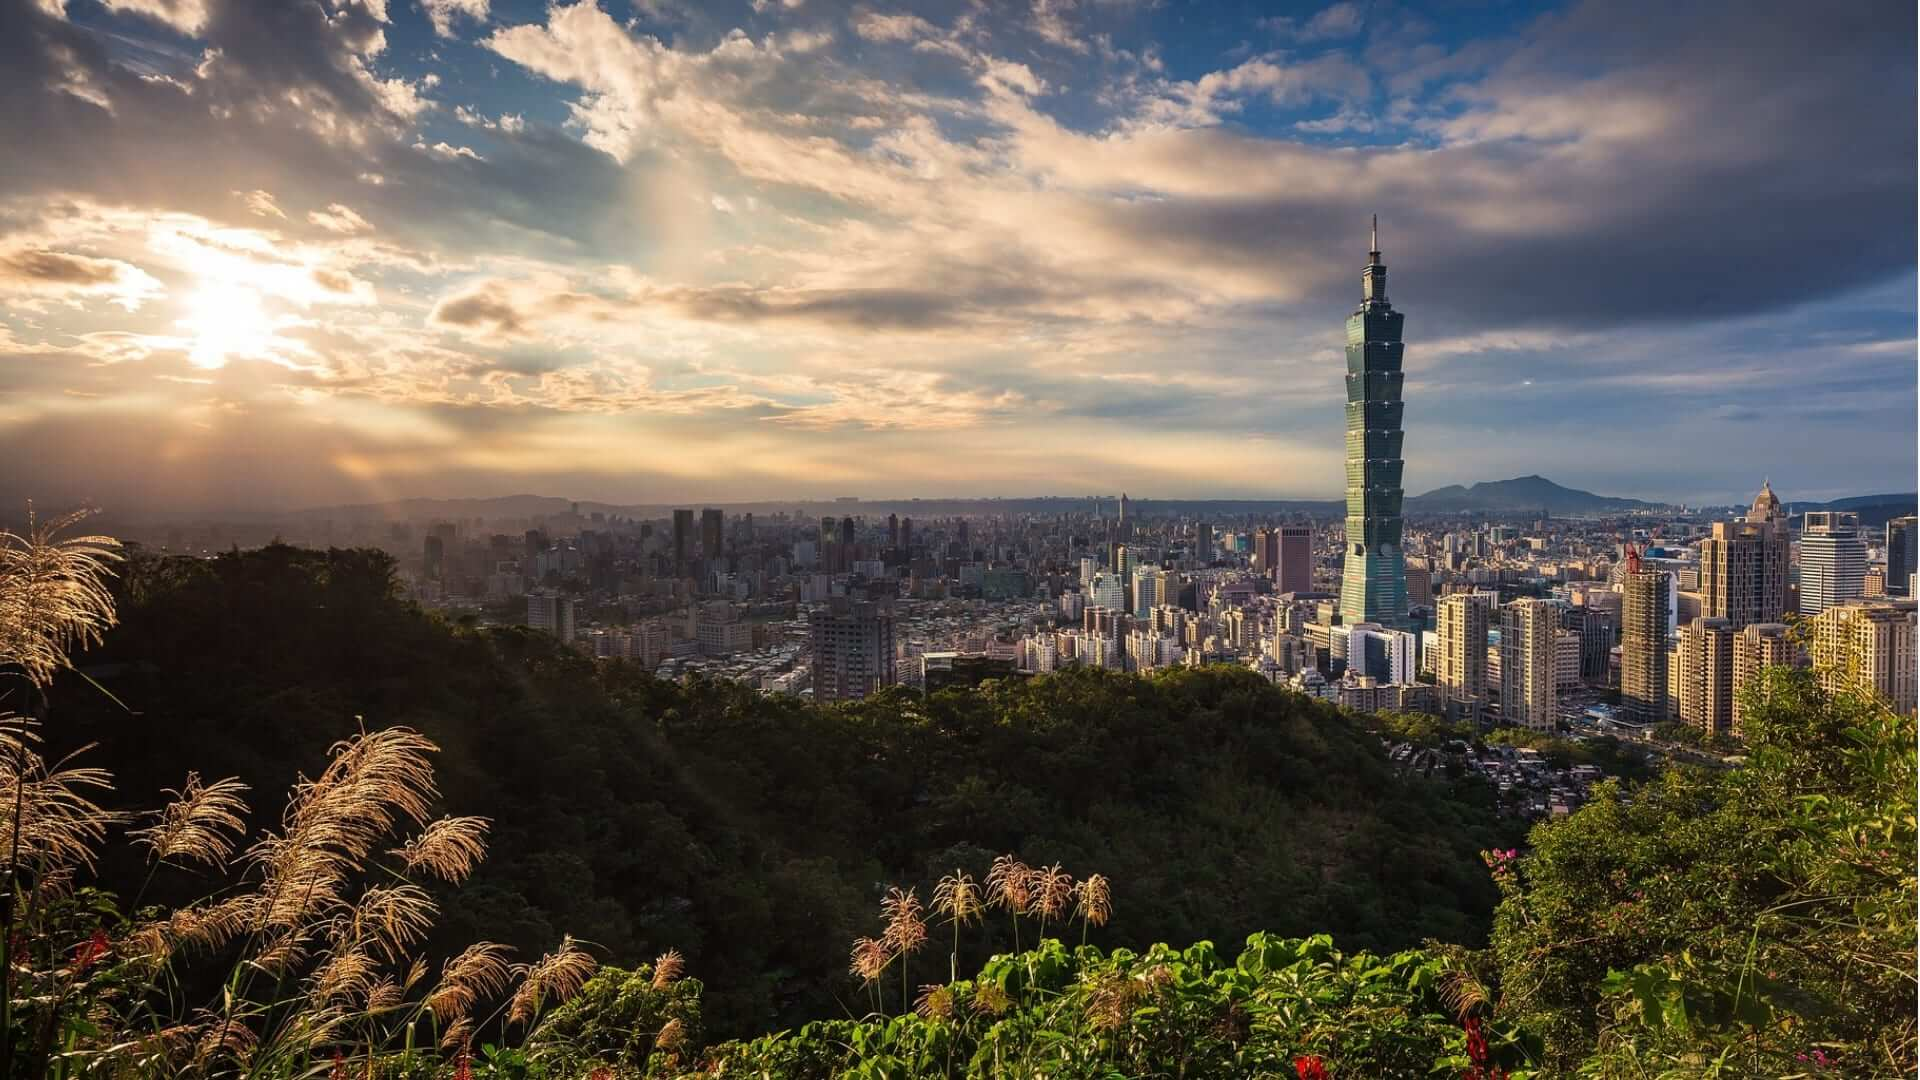 The sun shines through the clouds over Taipei and mountains and a large tower in Taiwan.